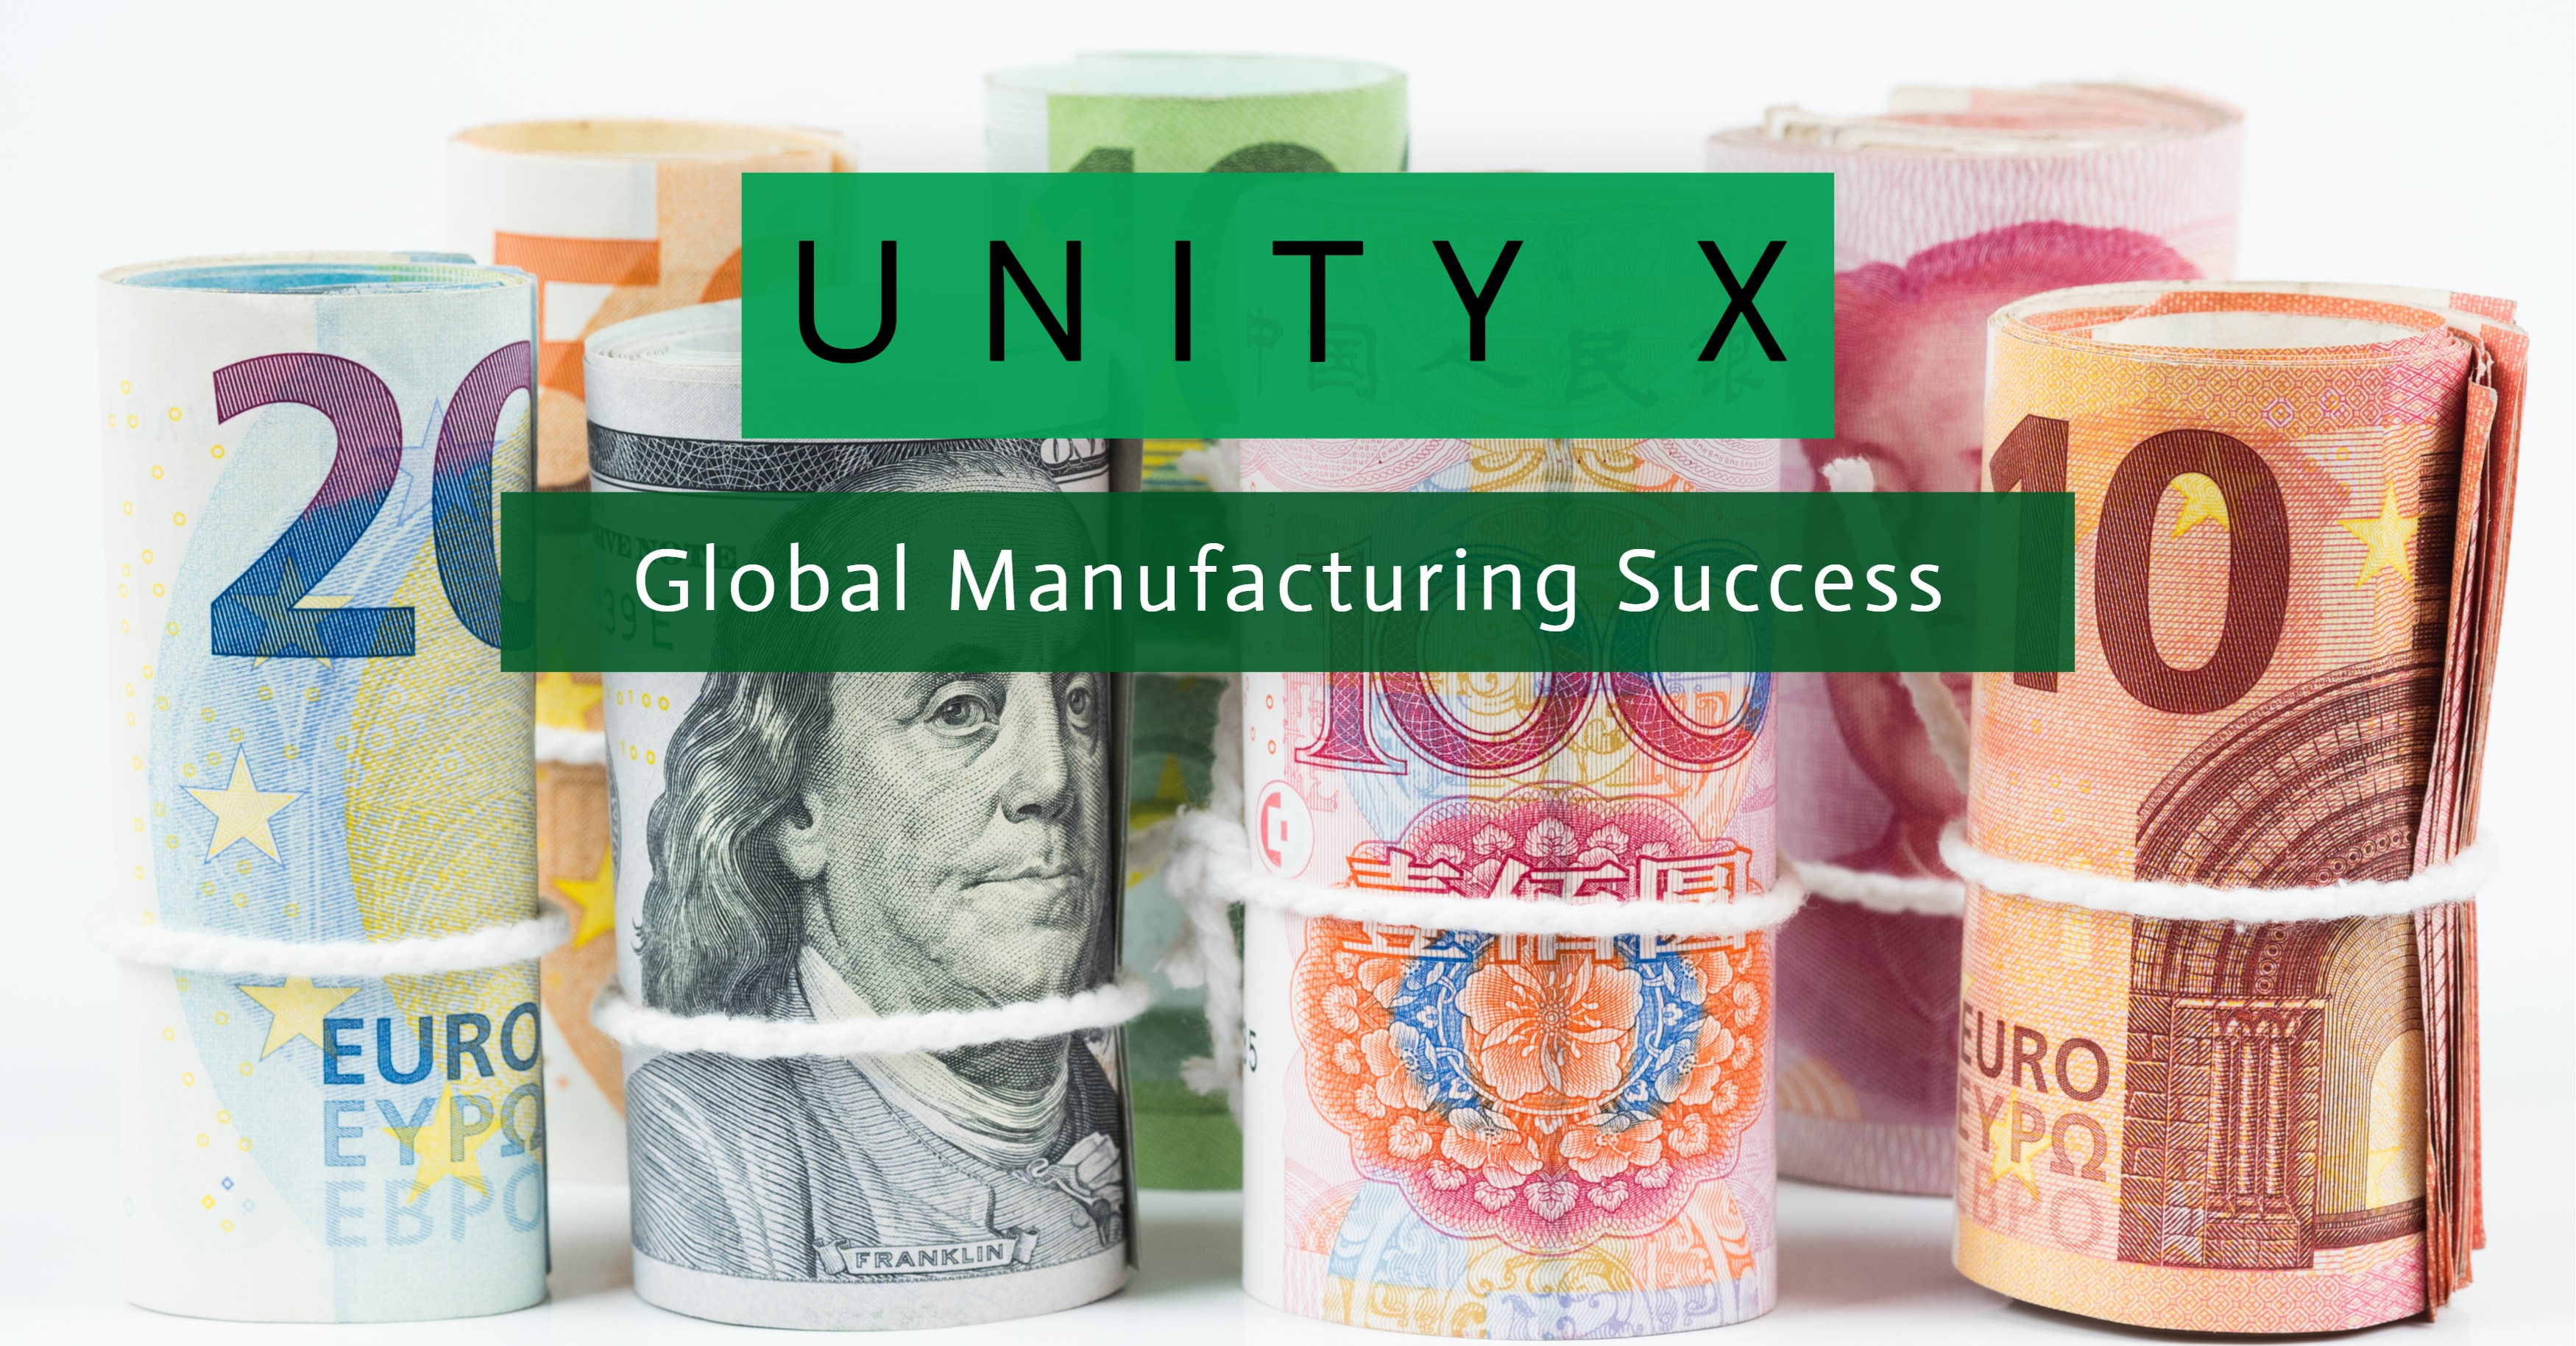 Unity X Global Manufacturing Success